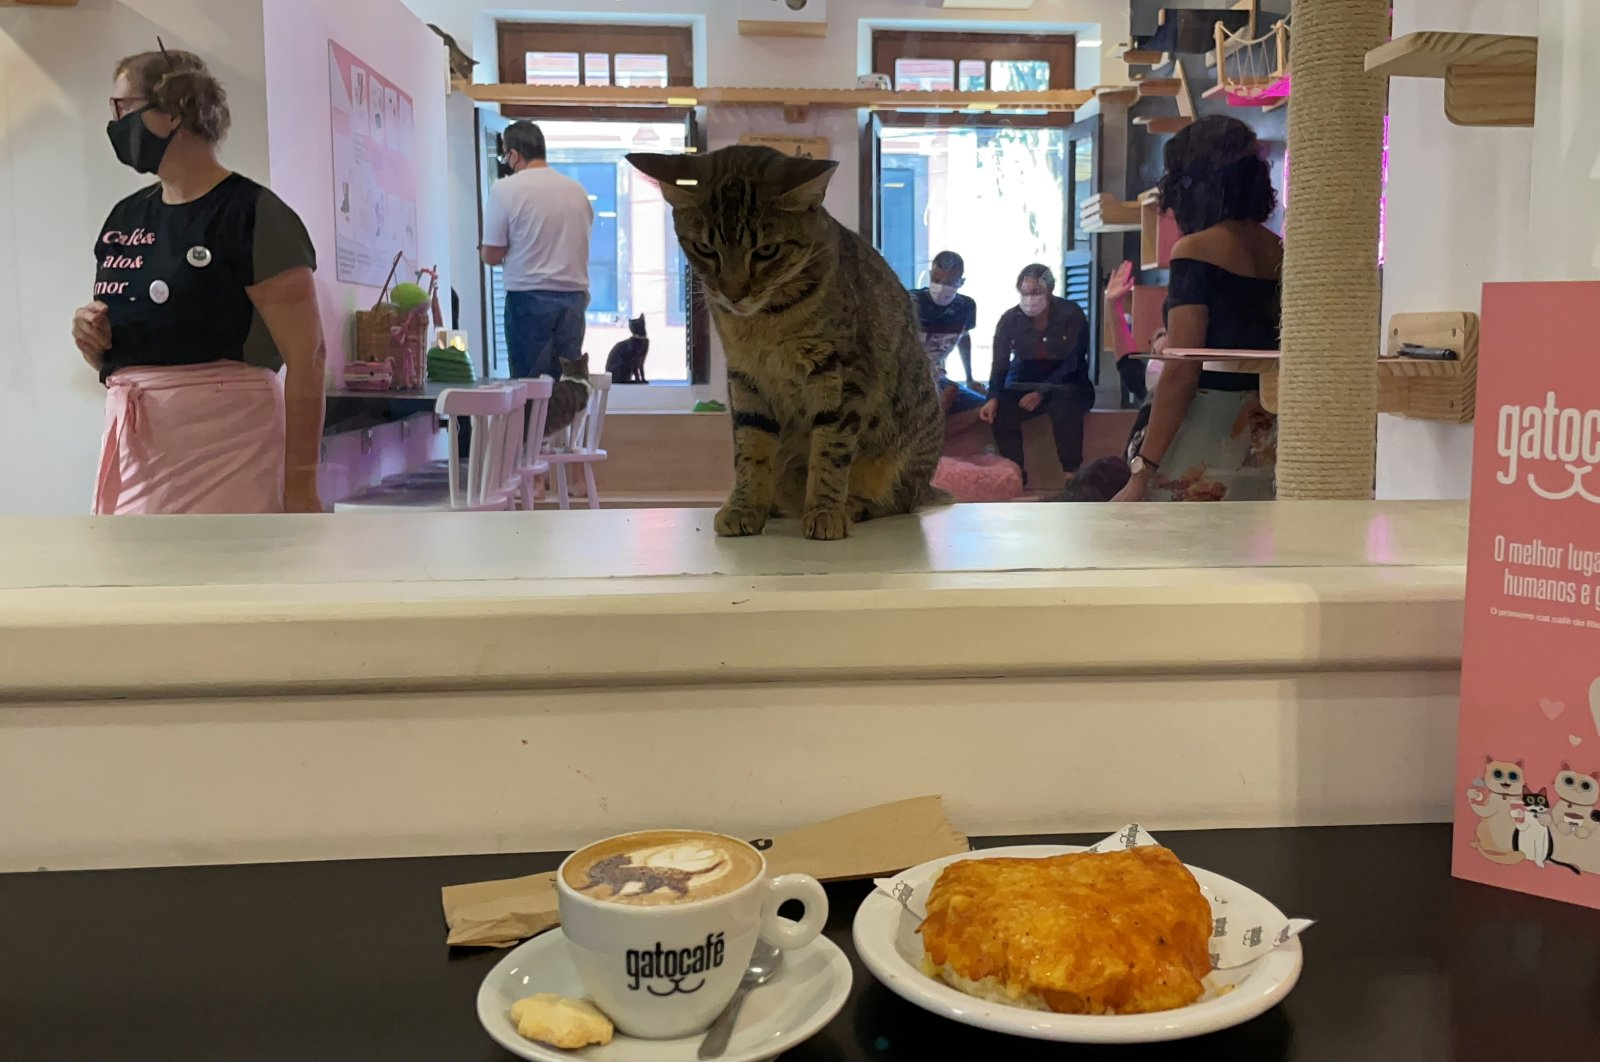 A cat looks at a cappuccino at the Rio cat cafe or Gato Cafe, where customers can relax while adopting a feline, in Rio de Janeiro, Brazil, July 10, 2021. (Reuters Photo)